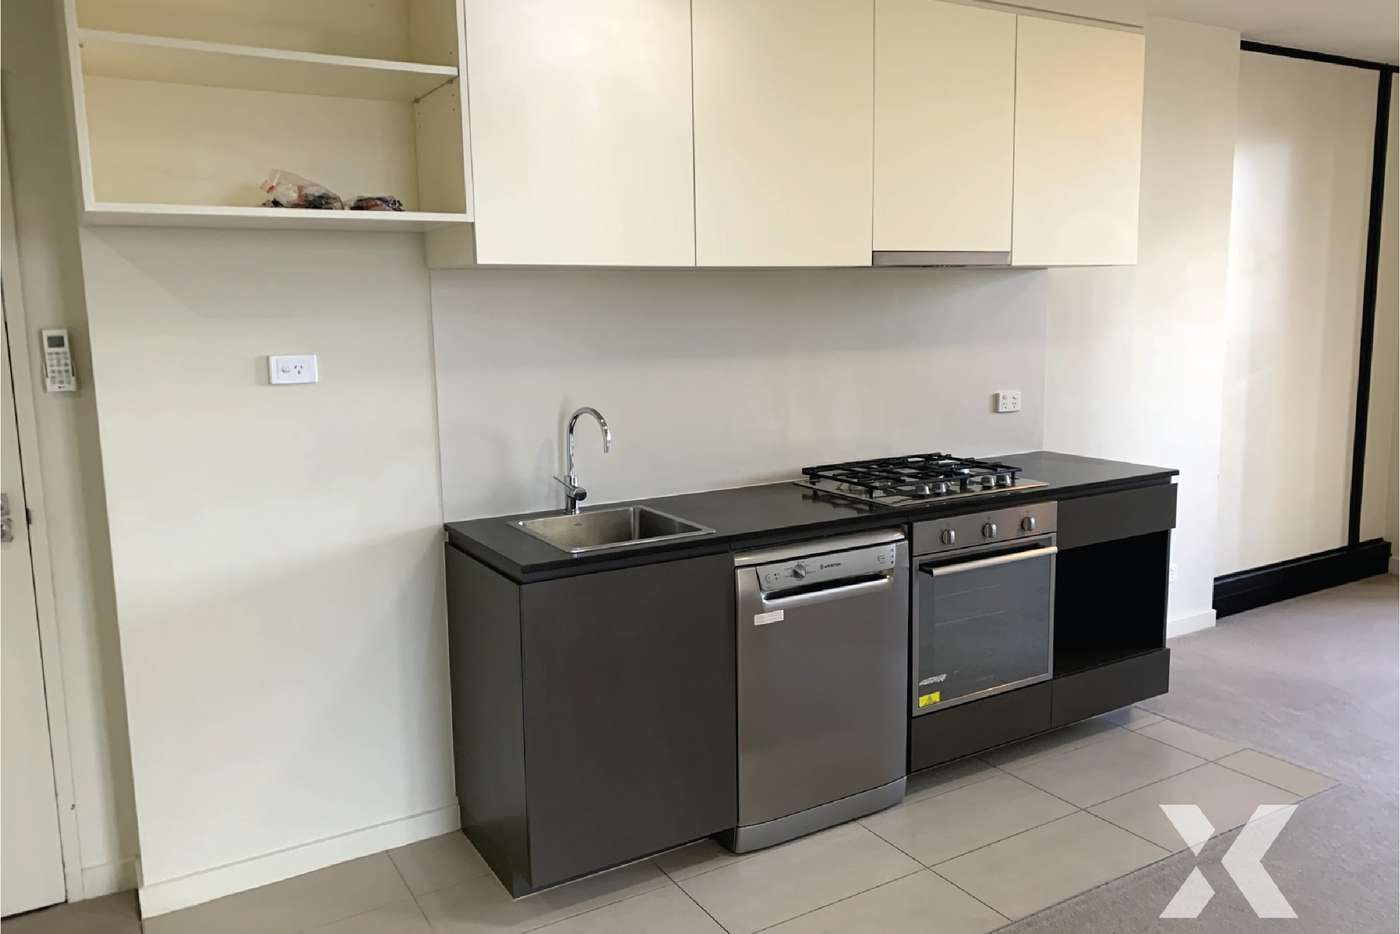 Sixth view of Homely apartment listing, 5405/568 Collins St, Melbourne VIC 3000